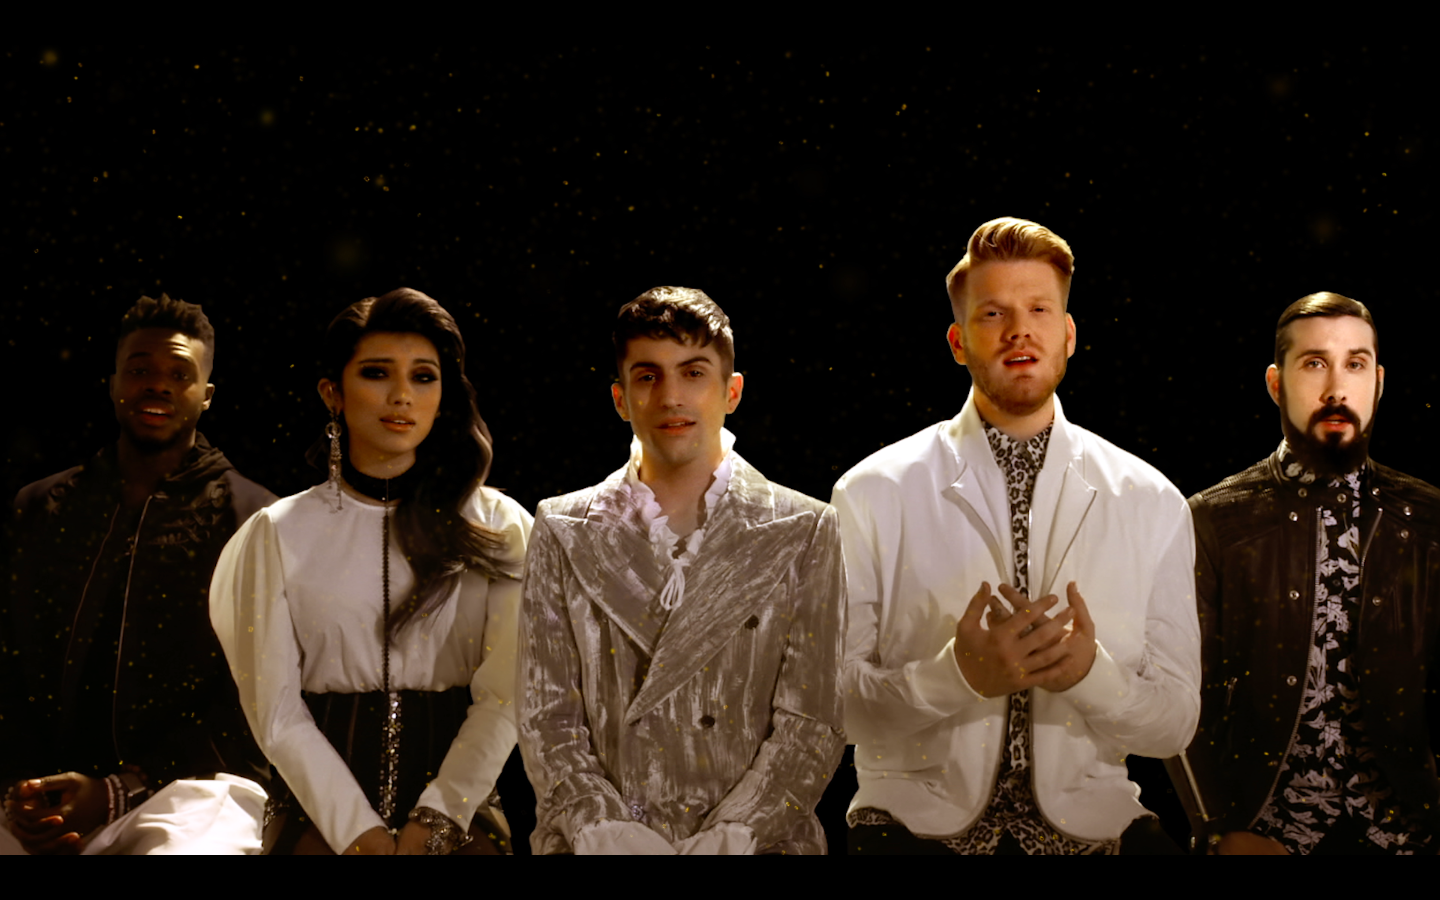 [OFFICIAL VIDEO] Can't Help Falling in Love – Pentatonix   PTXofficial